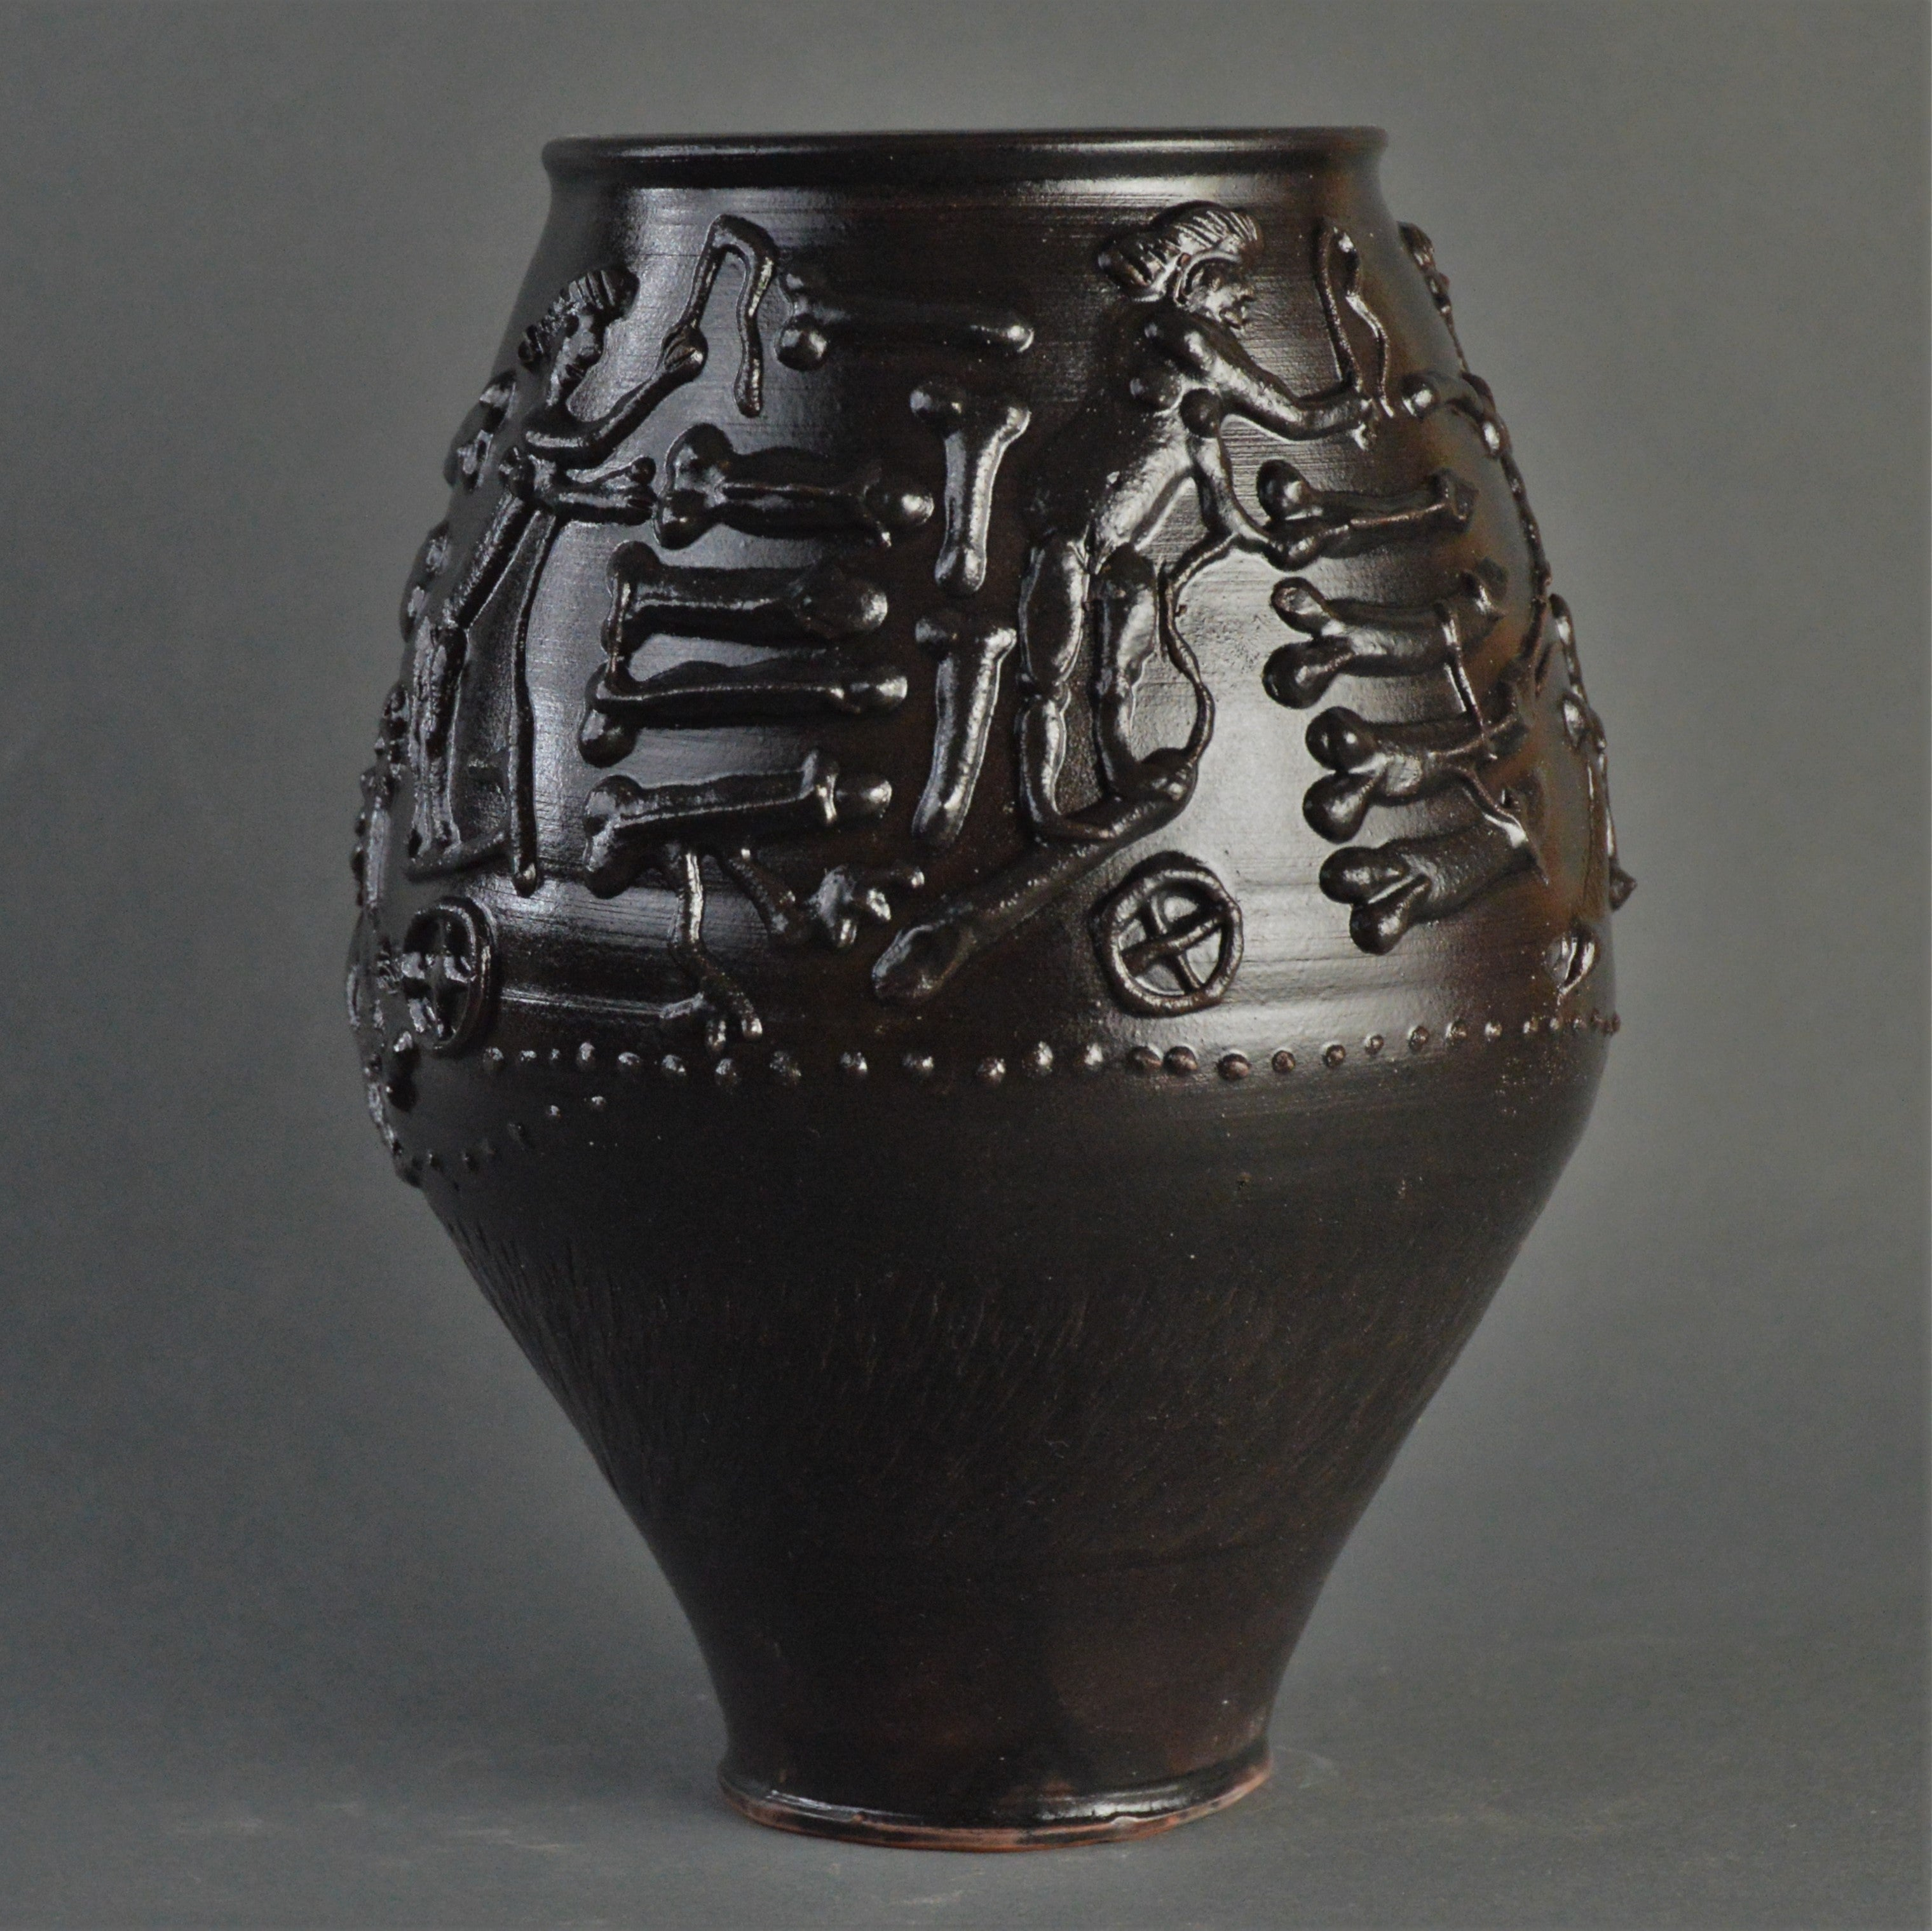 The Colchester Phallic Chariot Vase / Cup